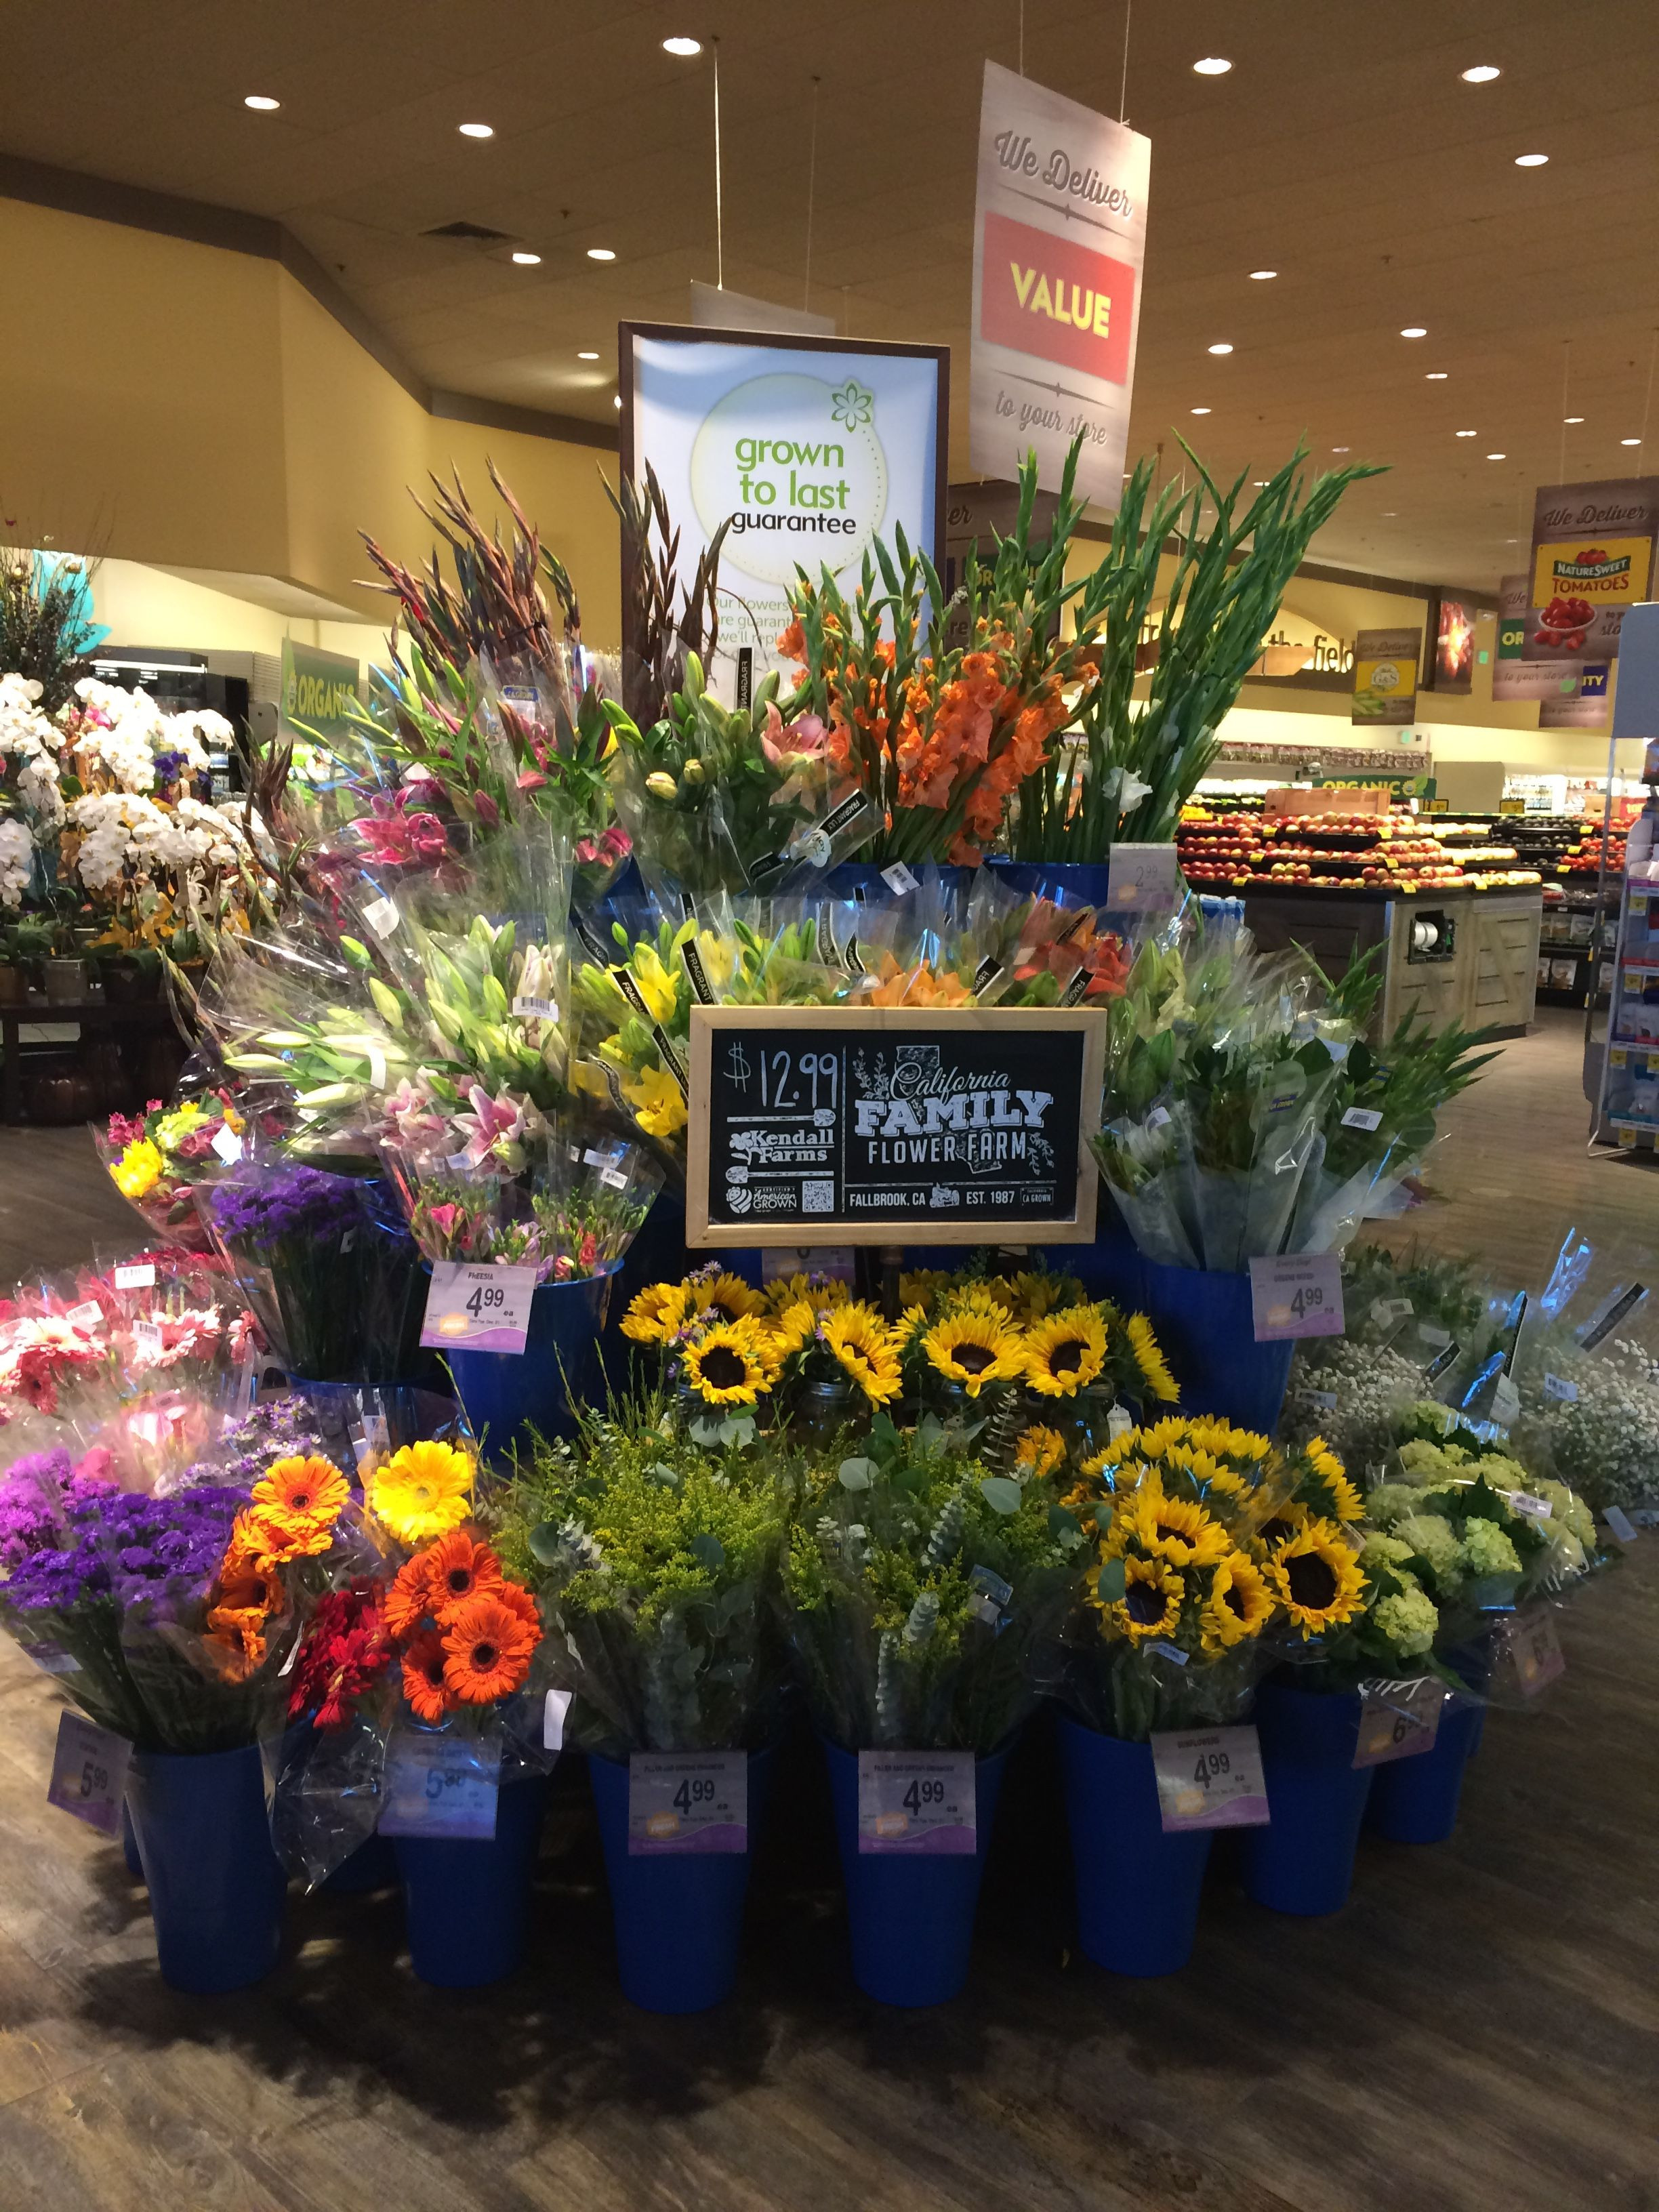 debi lilly design illusion vases of pin by tanya allen goodale on safeway flower shop pinterest with regard to pin by tanya allen goodale on safeway flower shop pinterest flowers floral and shopping